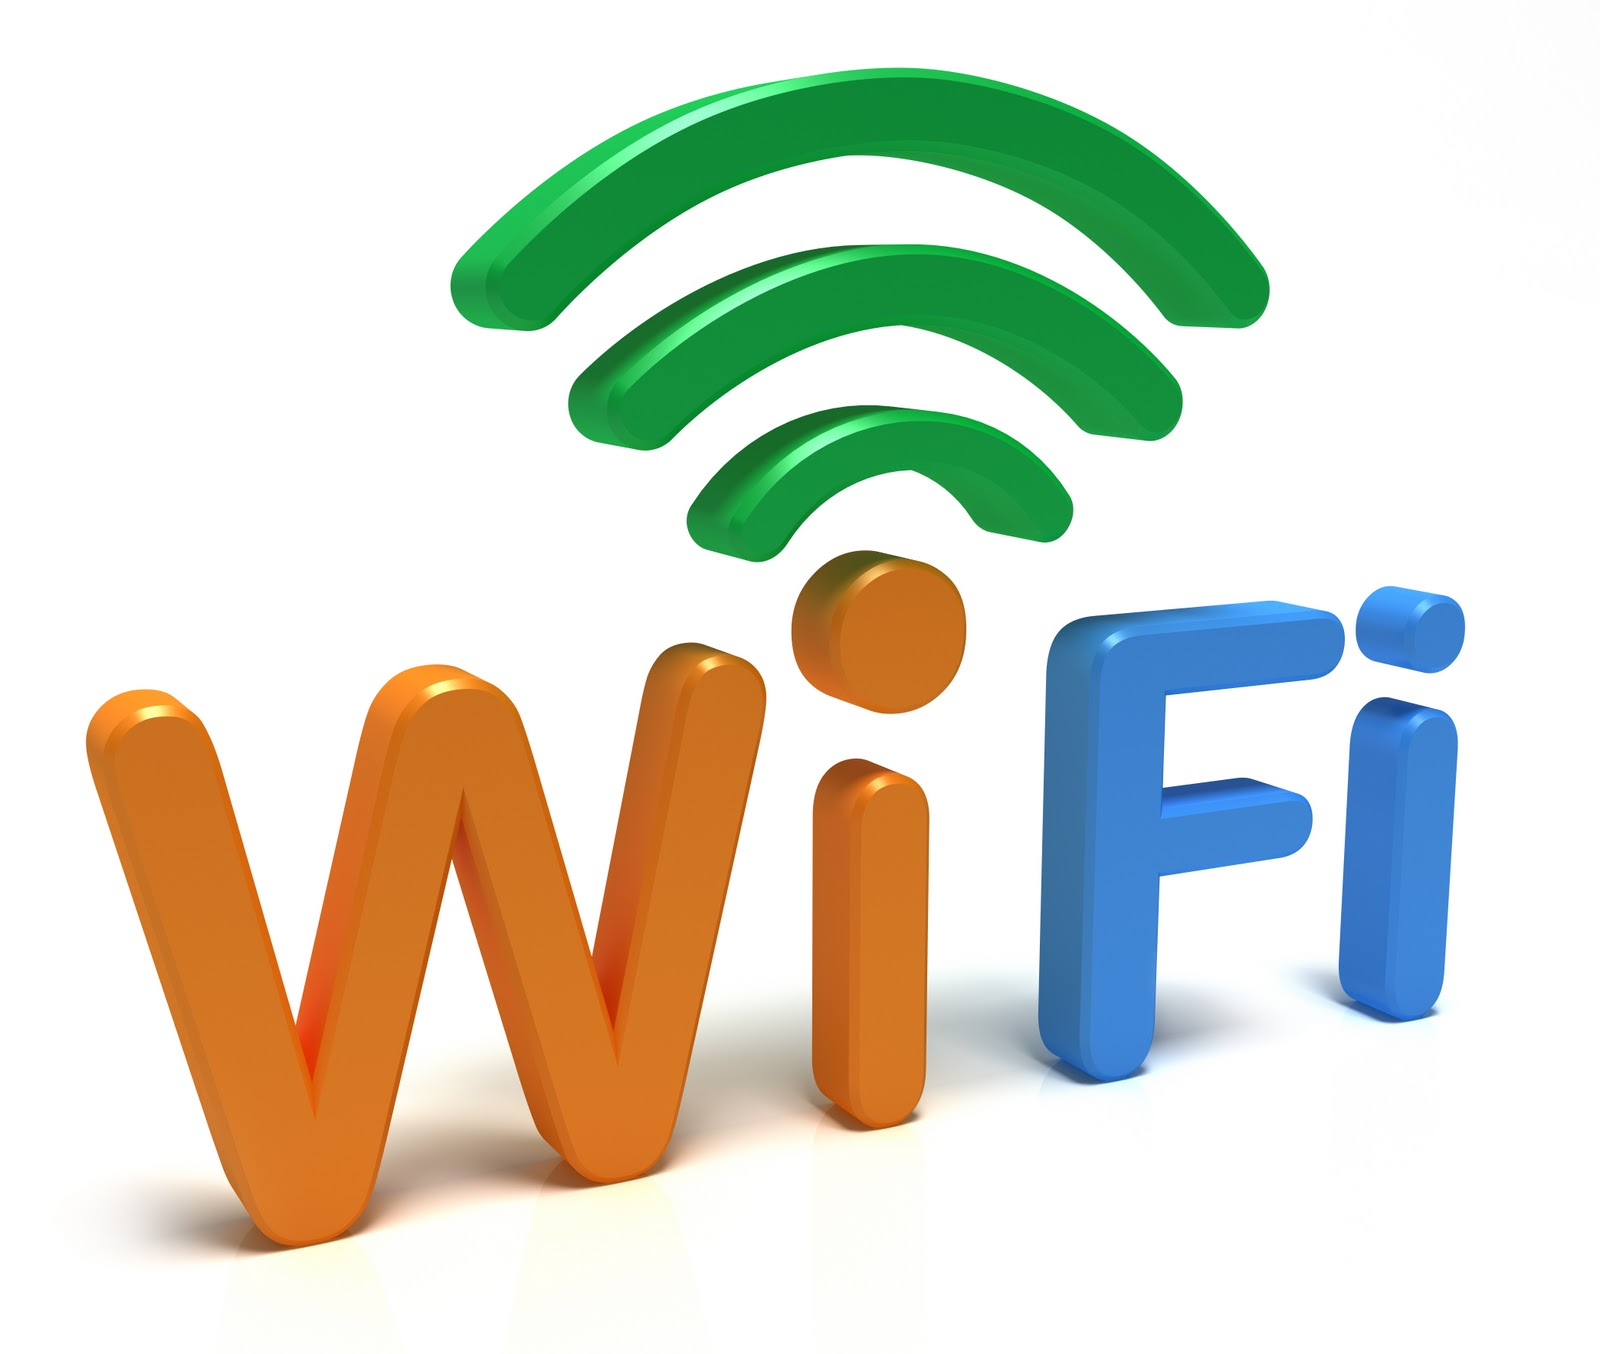 how to display what are connect to wifi